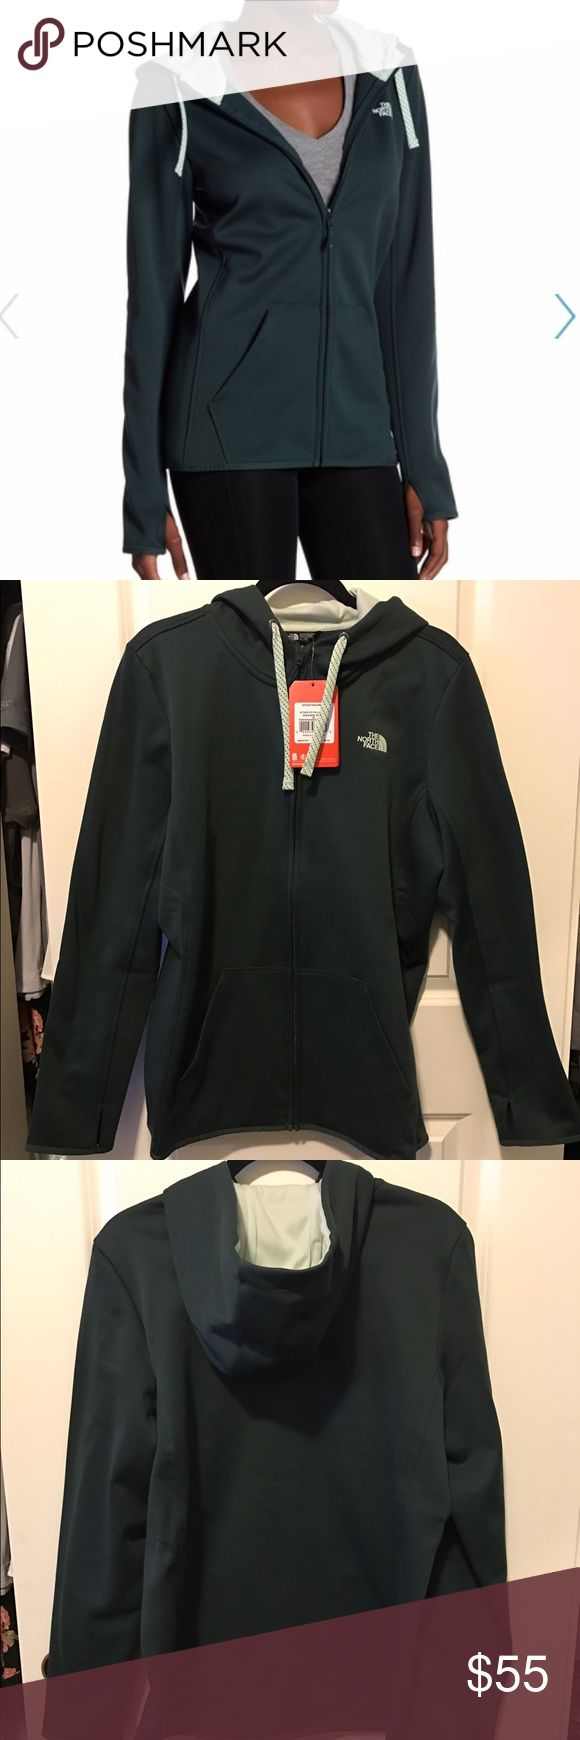 North Face Green Zip Up Hoodie North Face Green Zip Up Hoodie The North Face Jackets & Coats